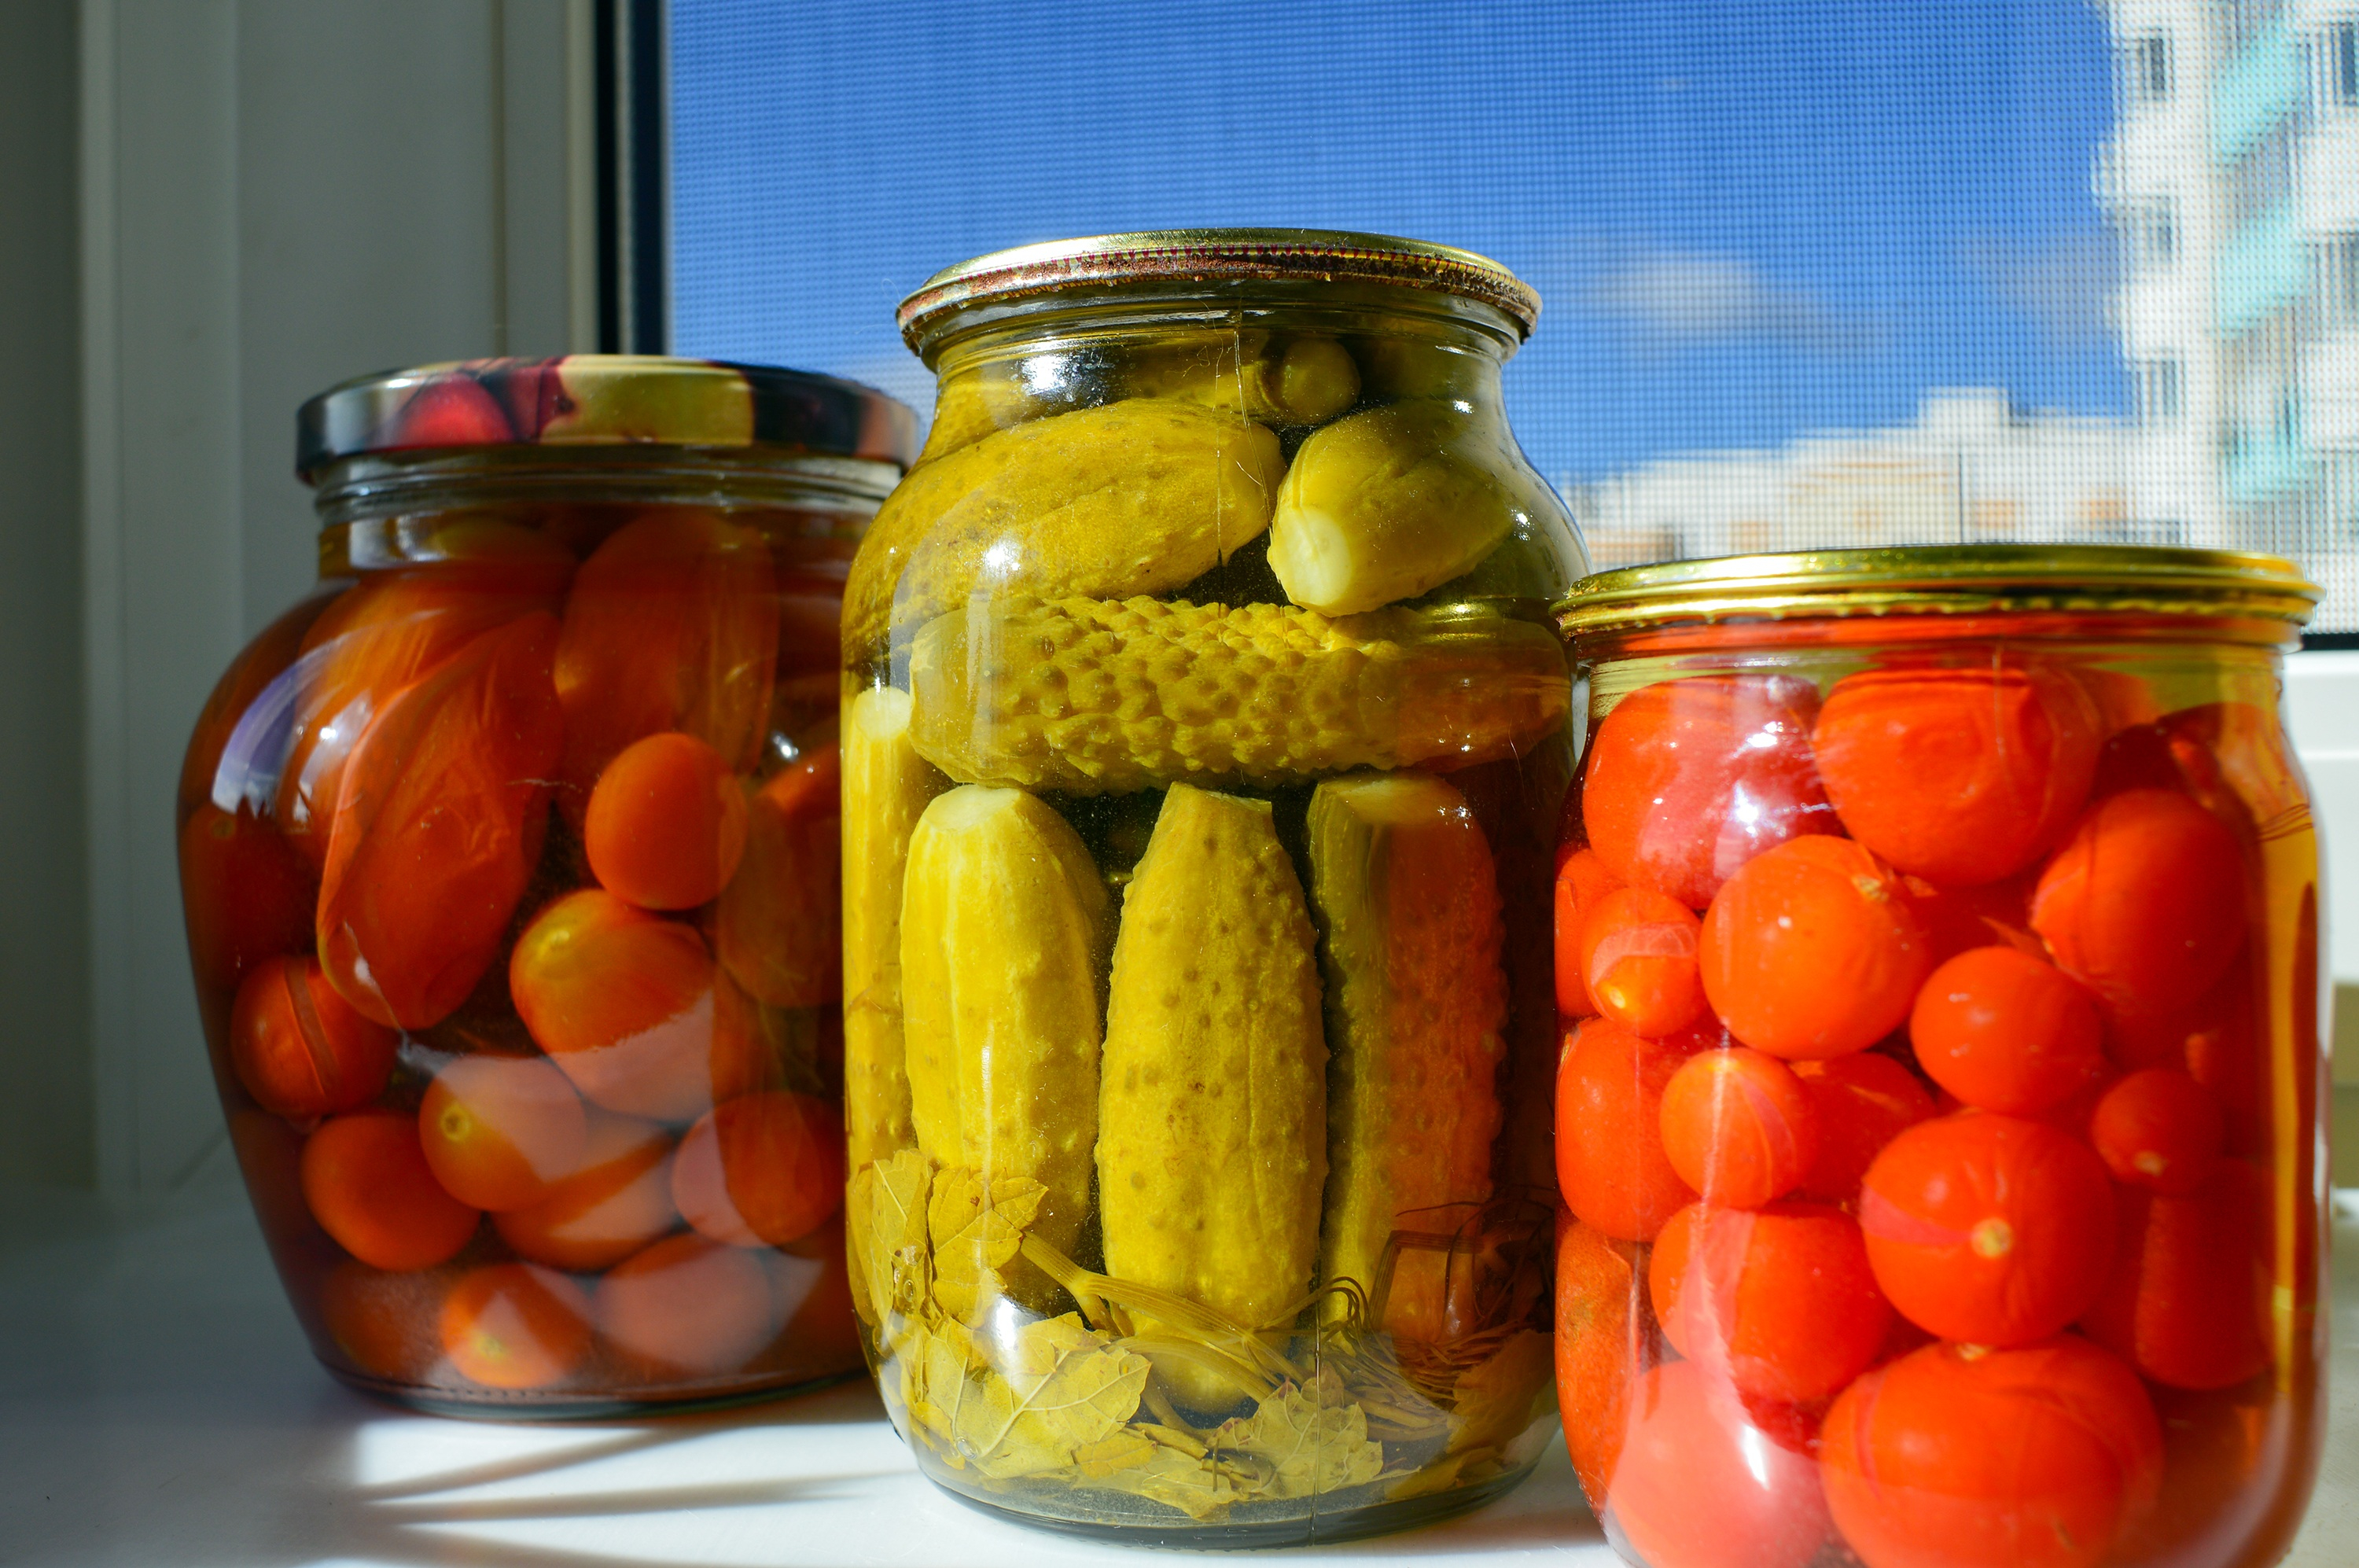 Canva - Pickled Cucumbers and Tomatoes in Glass Jars